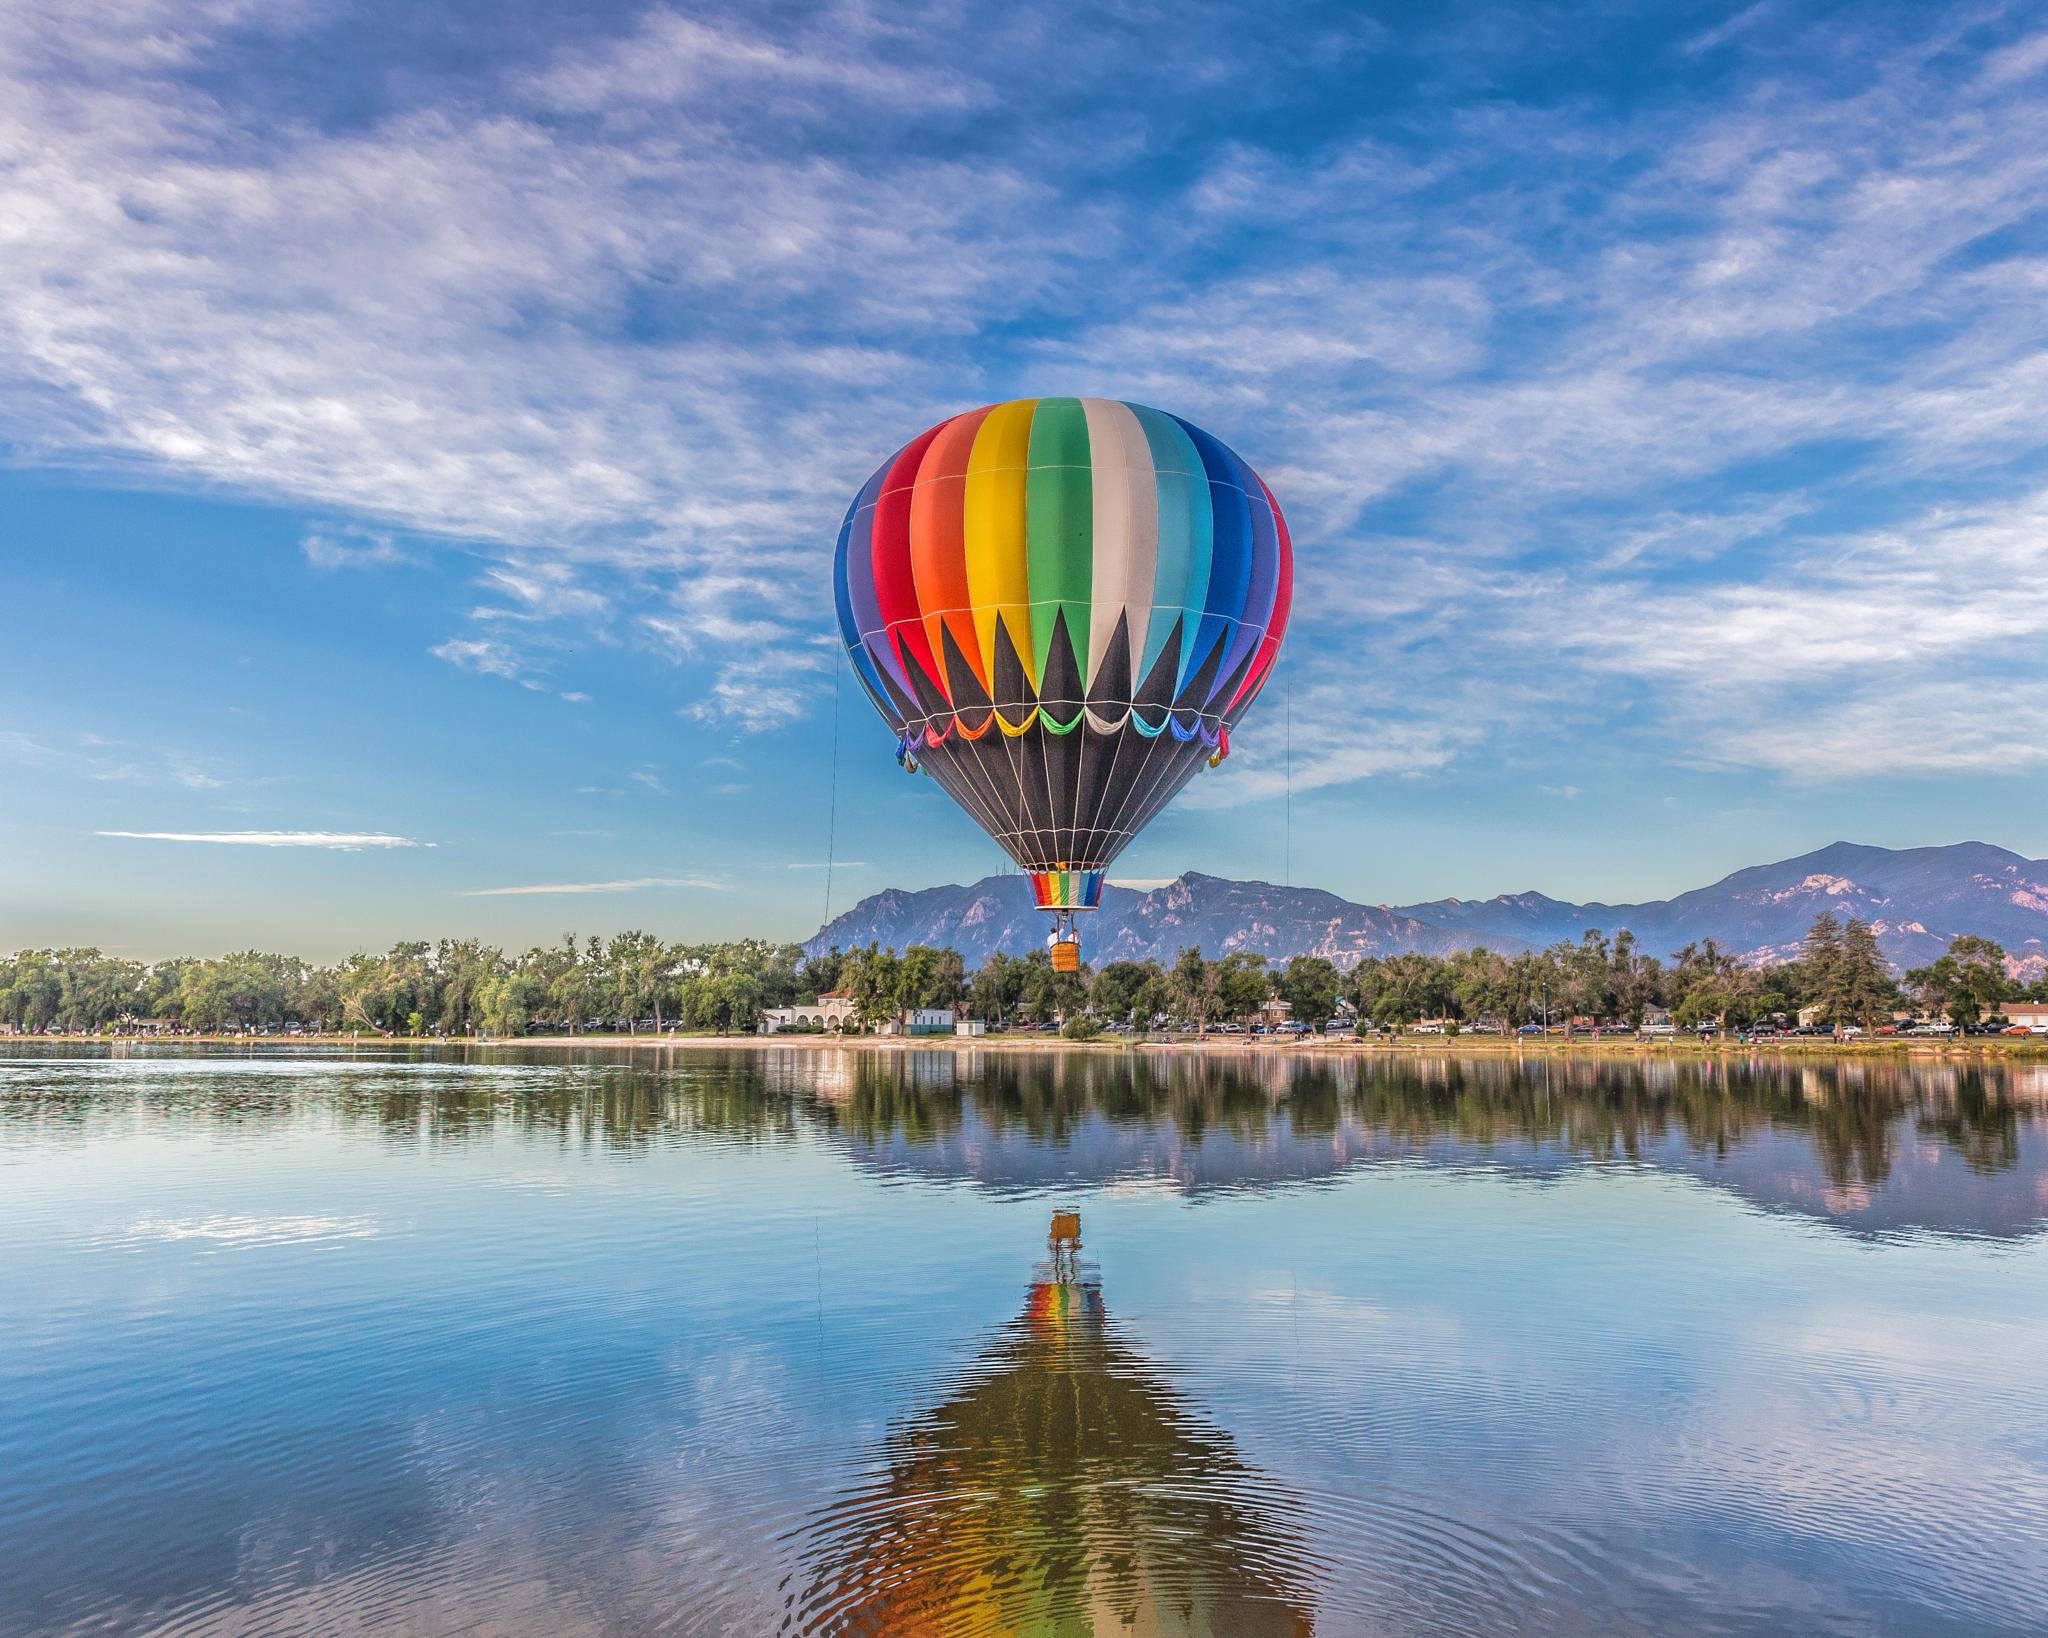 Balloon over Lake by FattirePhotography